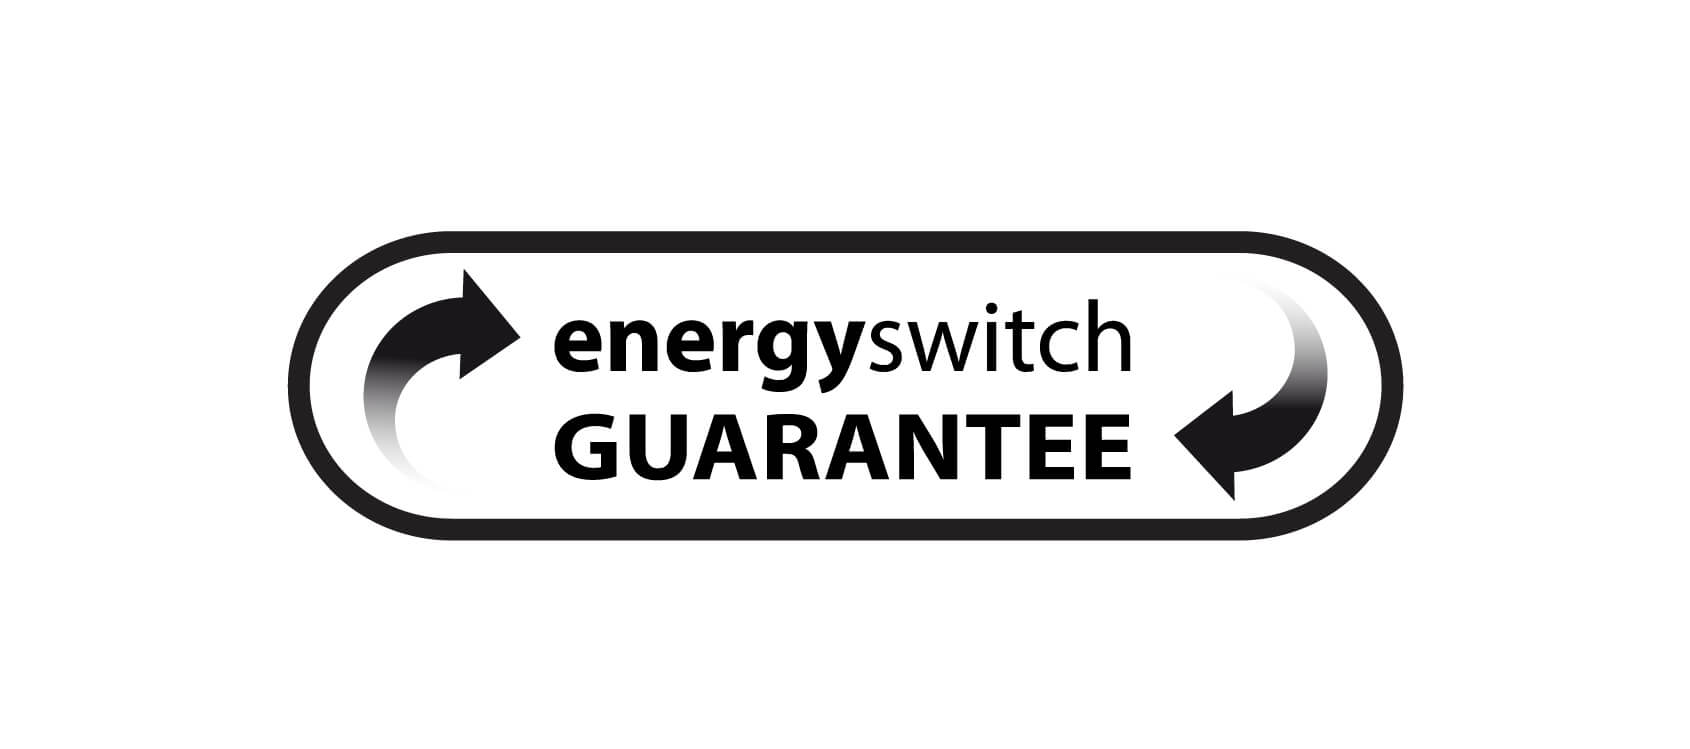 Switching Energy Supplier To Sse Can Be Used For Time Switches As Elkay Management How Do I Switch Provider